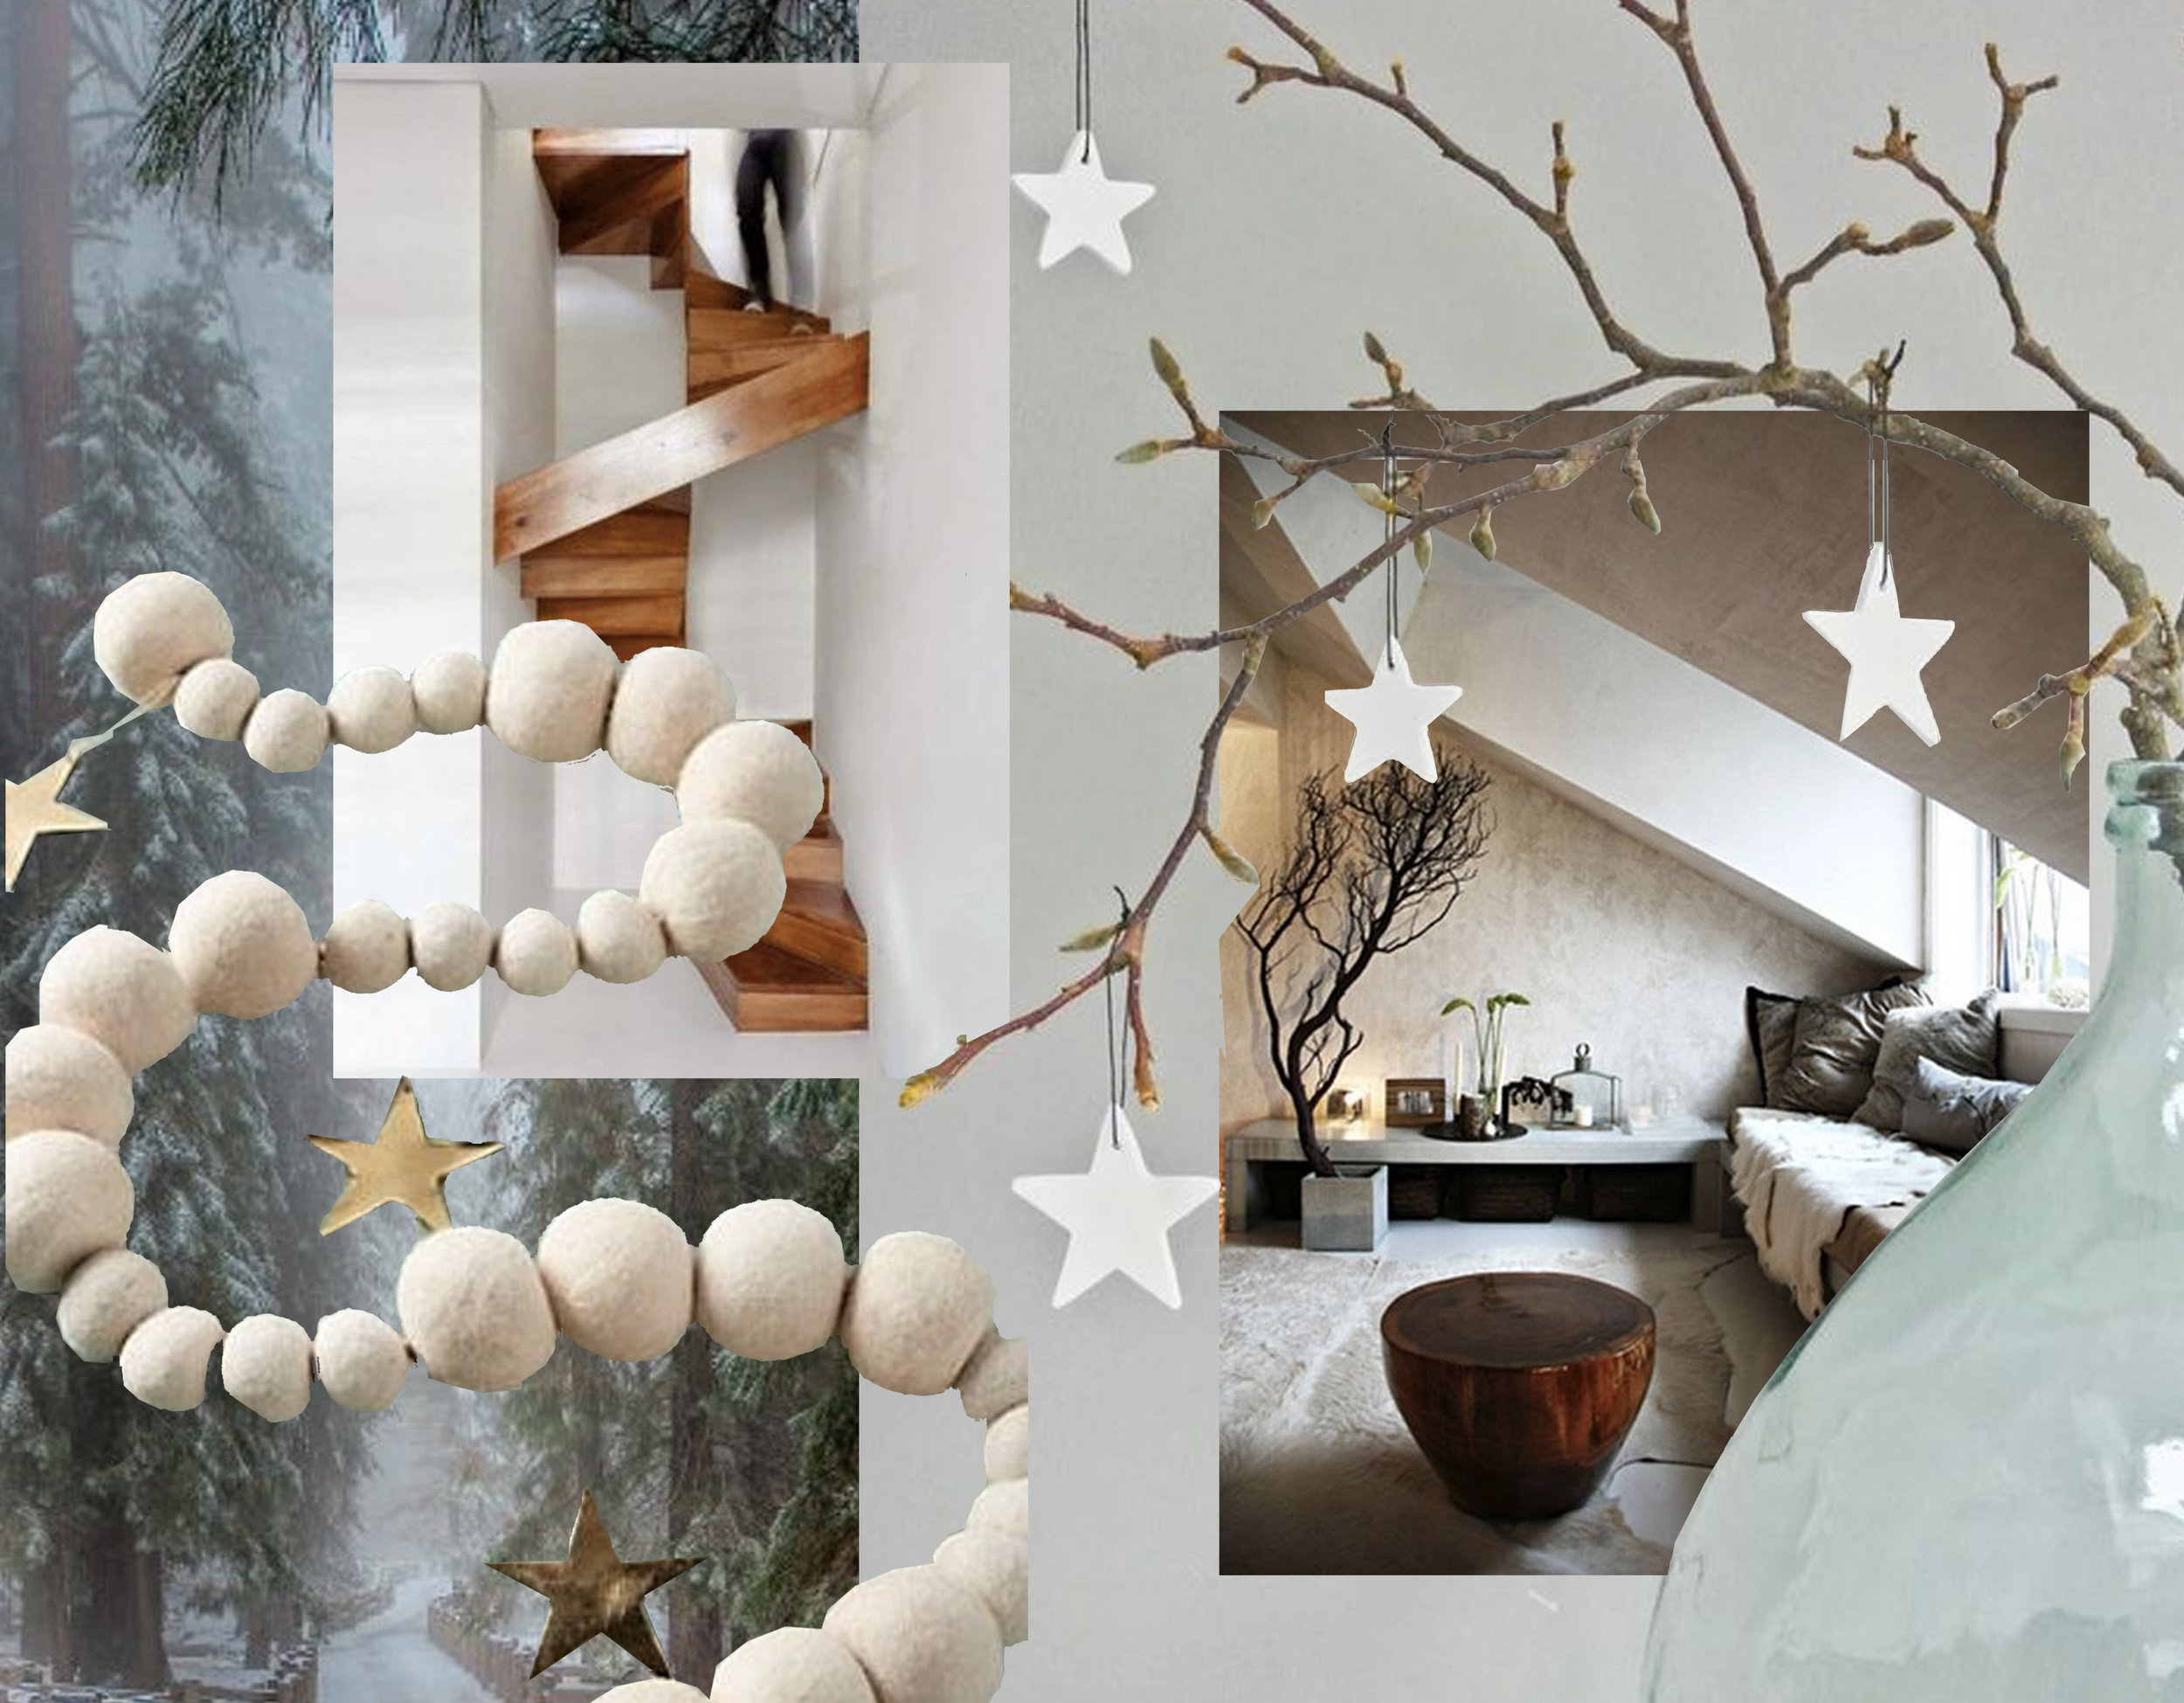 white felted garland via  Freshome  - staircase via  Staircase Design  - attic via  House at Heart  - branch with stars via  Lekker Fris